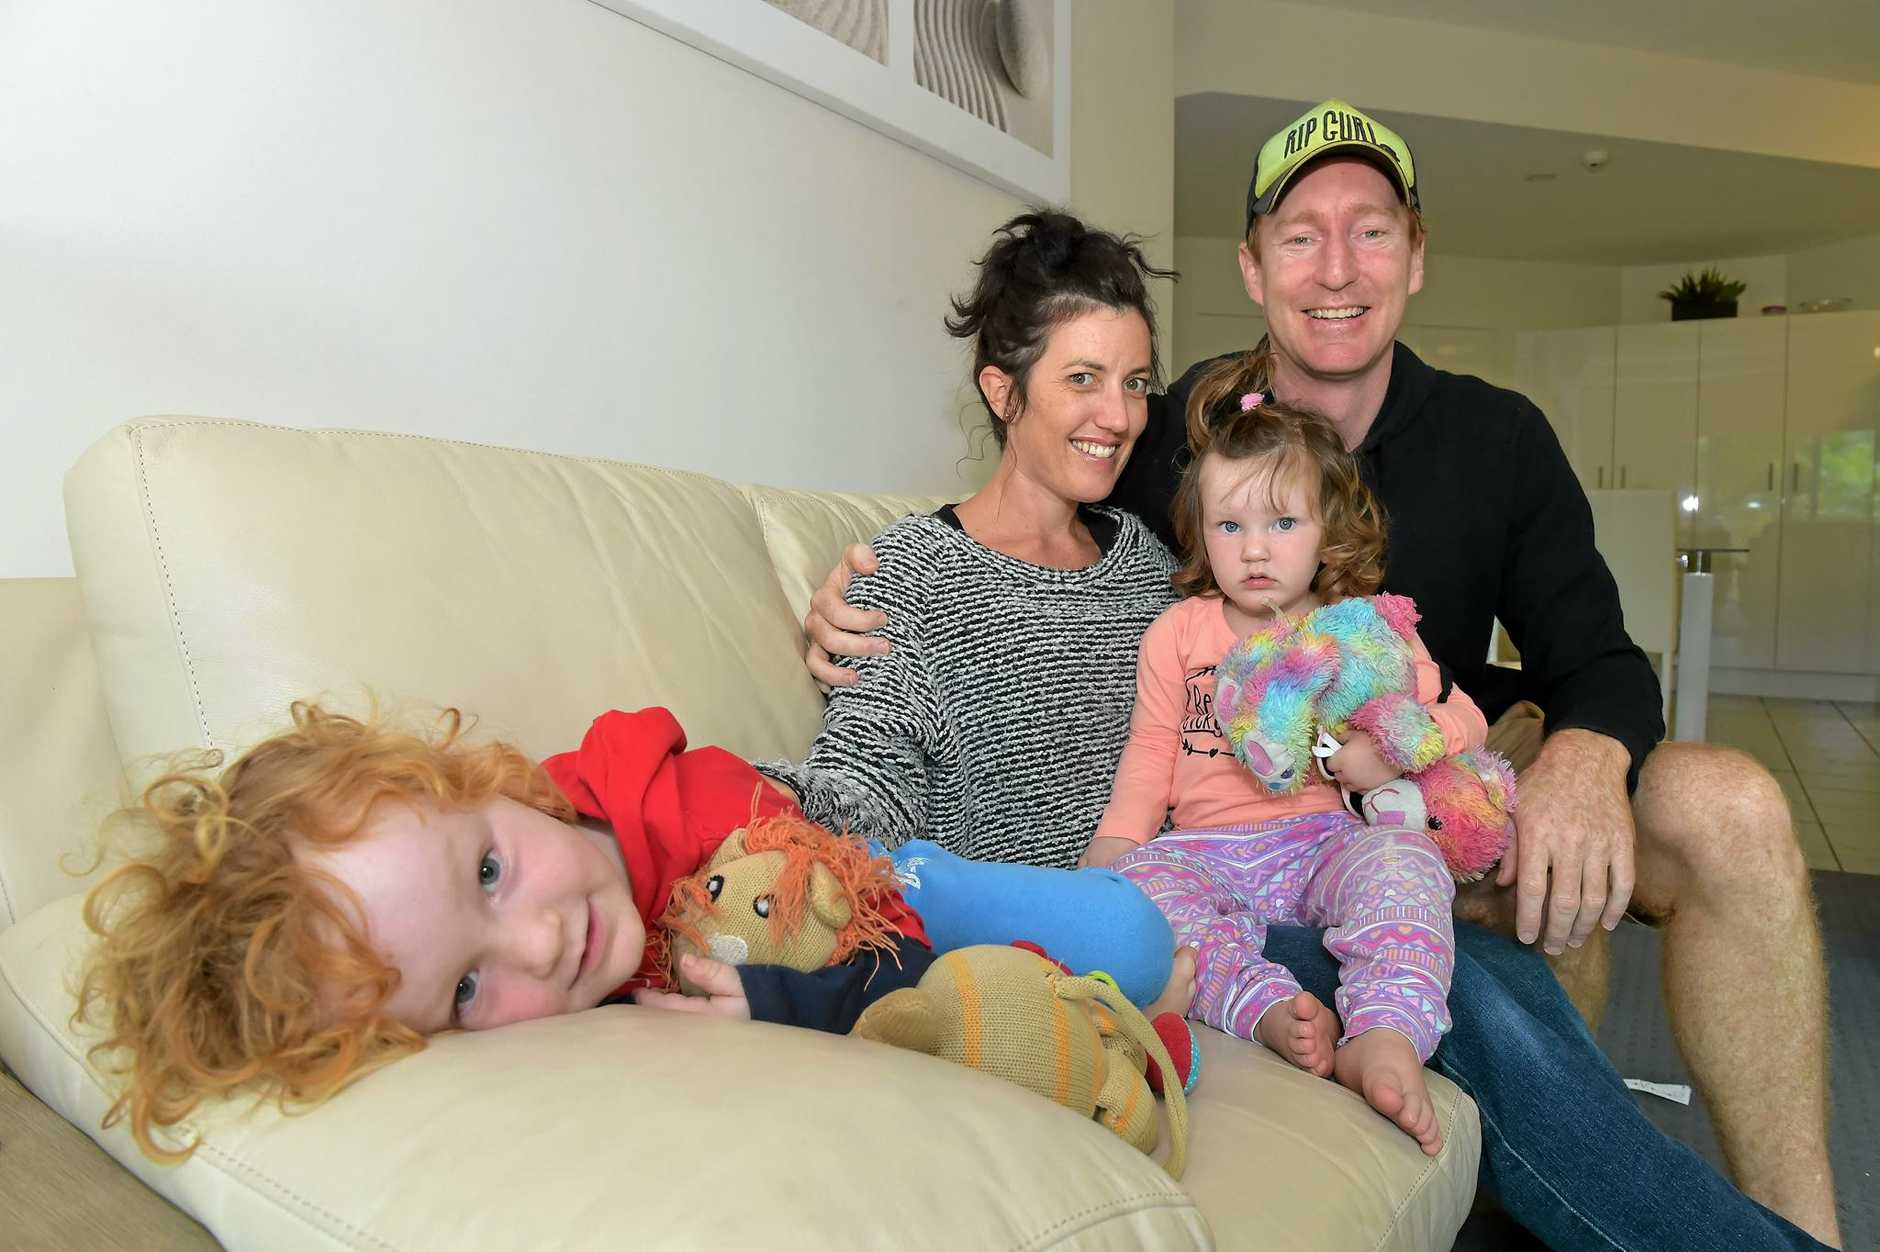 Akeringa Place residents Carl and Tracey Hunt with their children Archie and Evie are staying at a unit in Mooloolaba after the roof of their home was blown off in a storm.